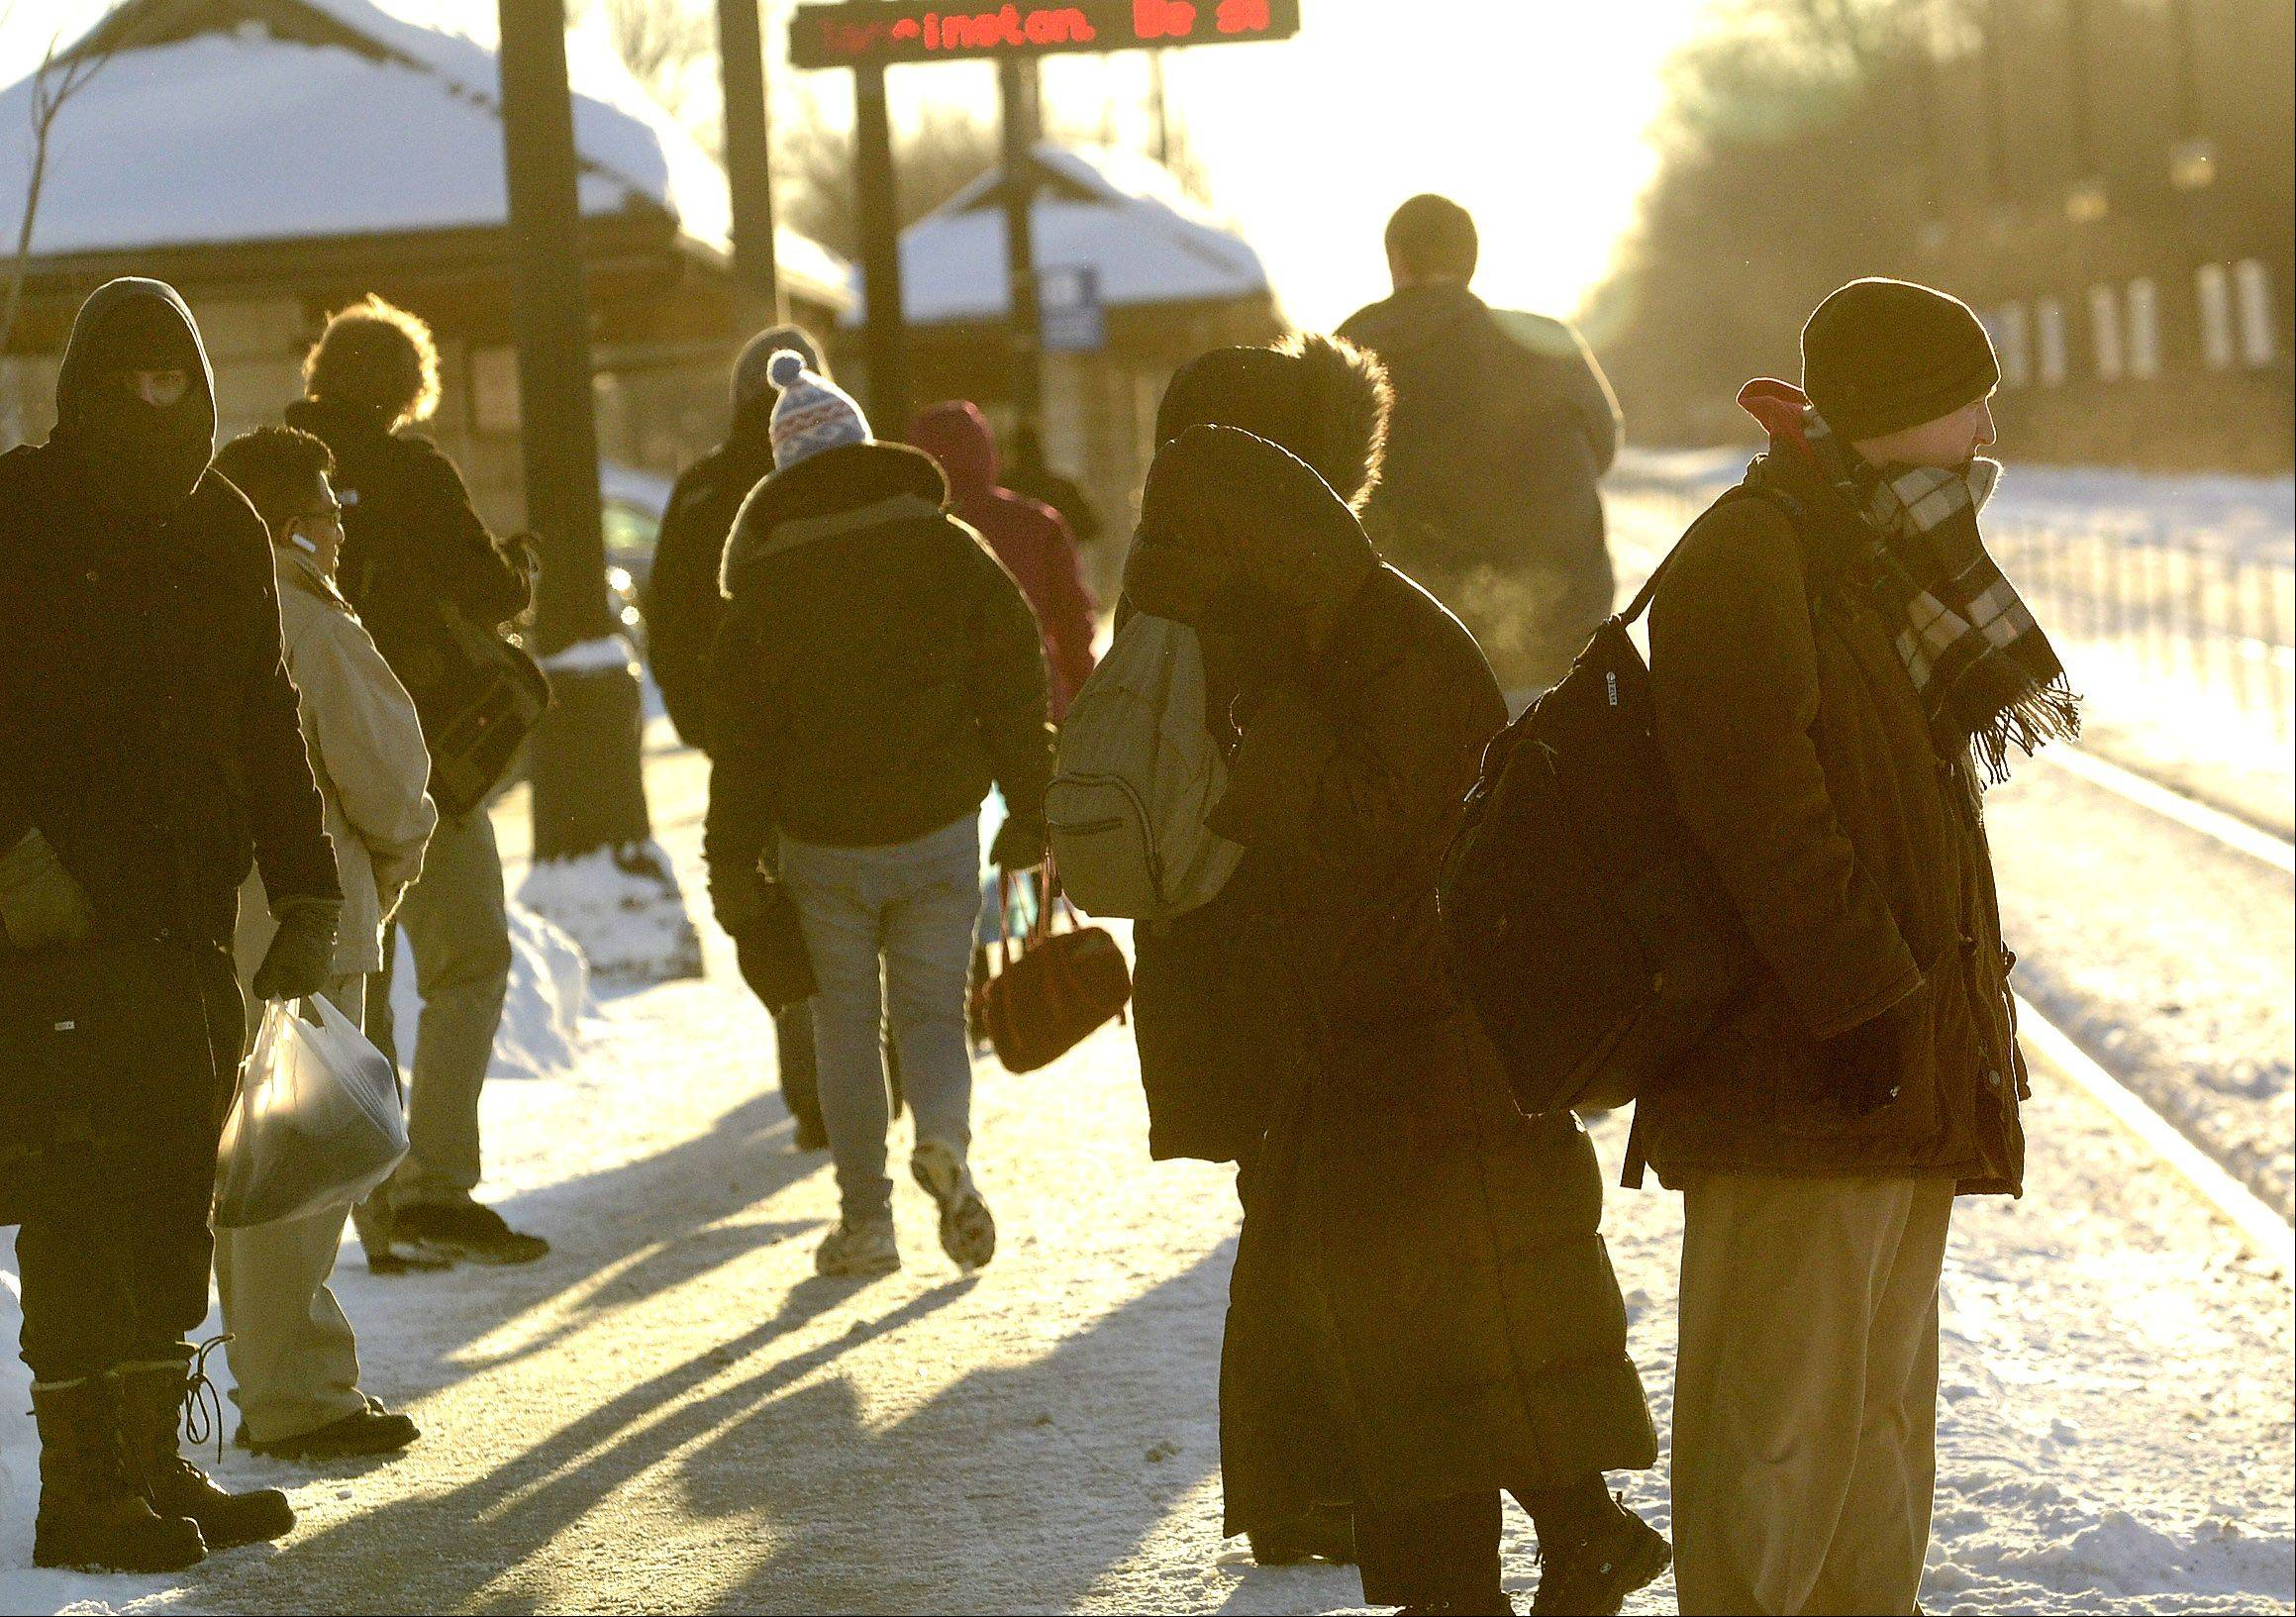 Cold commuters wait outside the Barrington Metra Station in -15 degree temperatures, waiting for the next train into Chicago Monday morning.